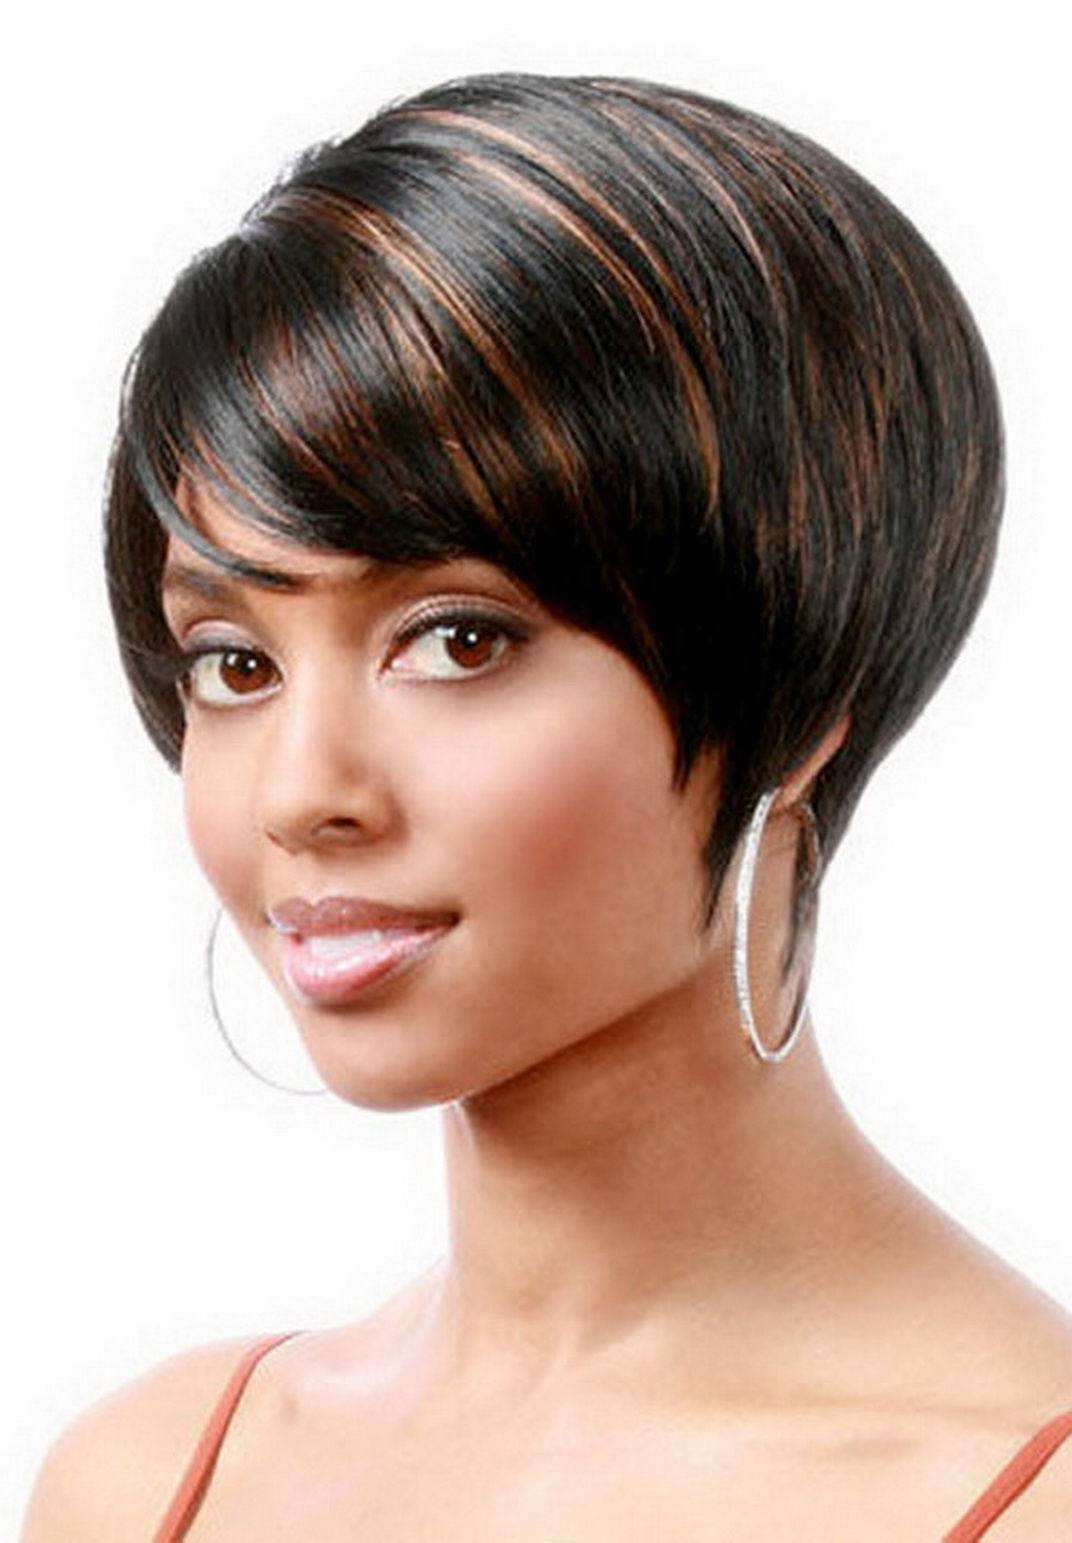 Short Black Hair Short Hairstyles For Black Women Y Natural Haircuts With Regard To Black Women Natural Short Hairstyles (View 17 of 25)